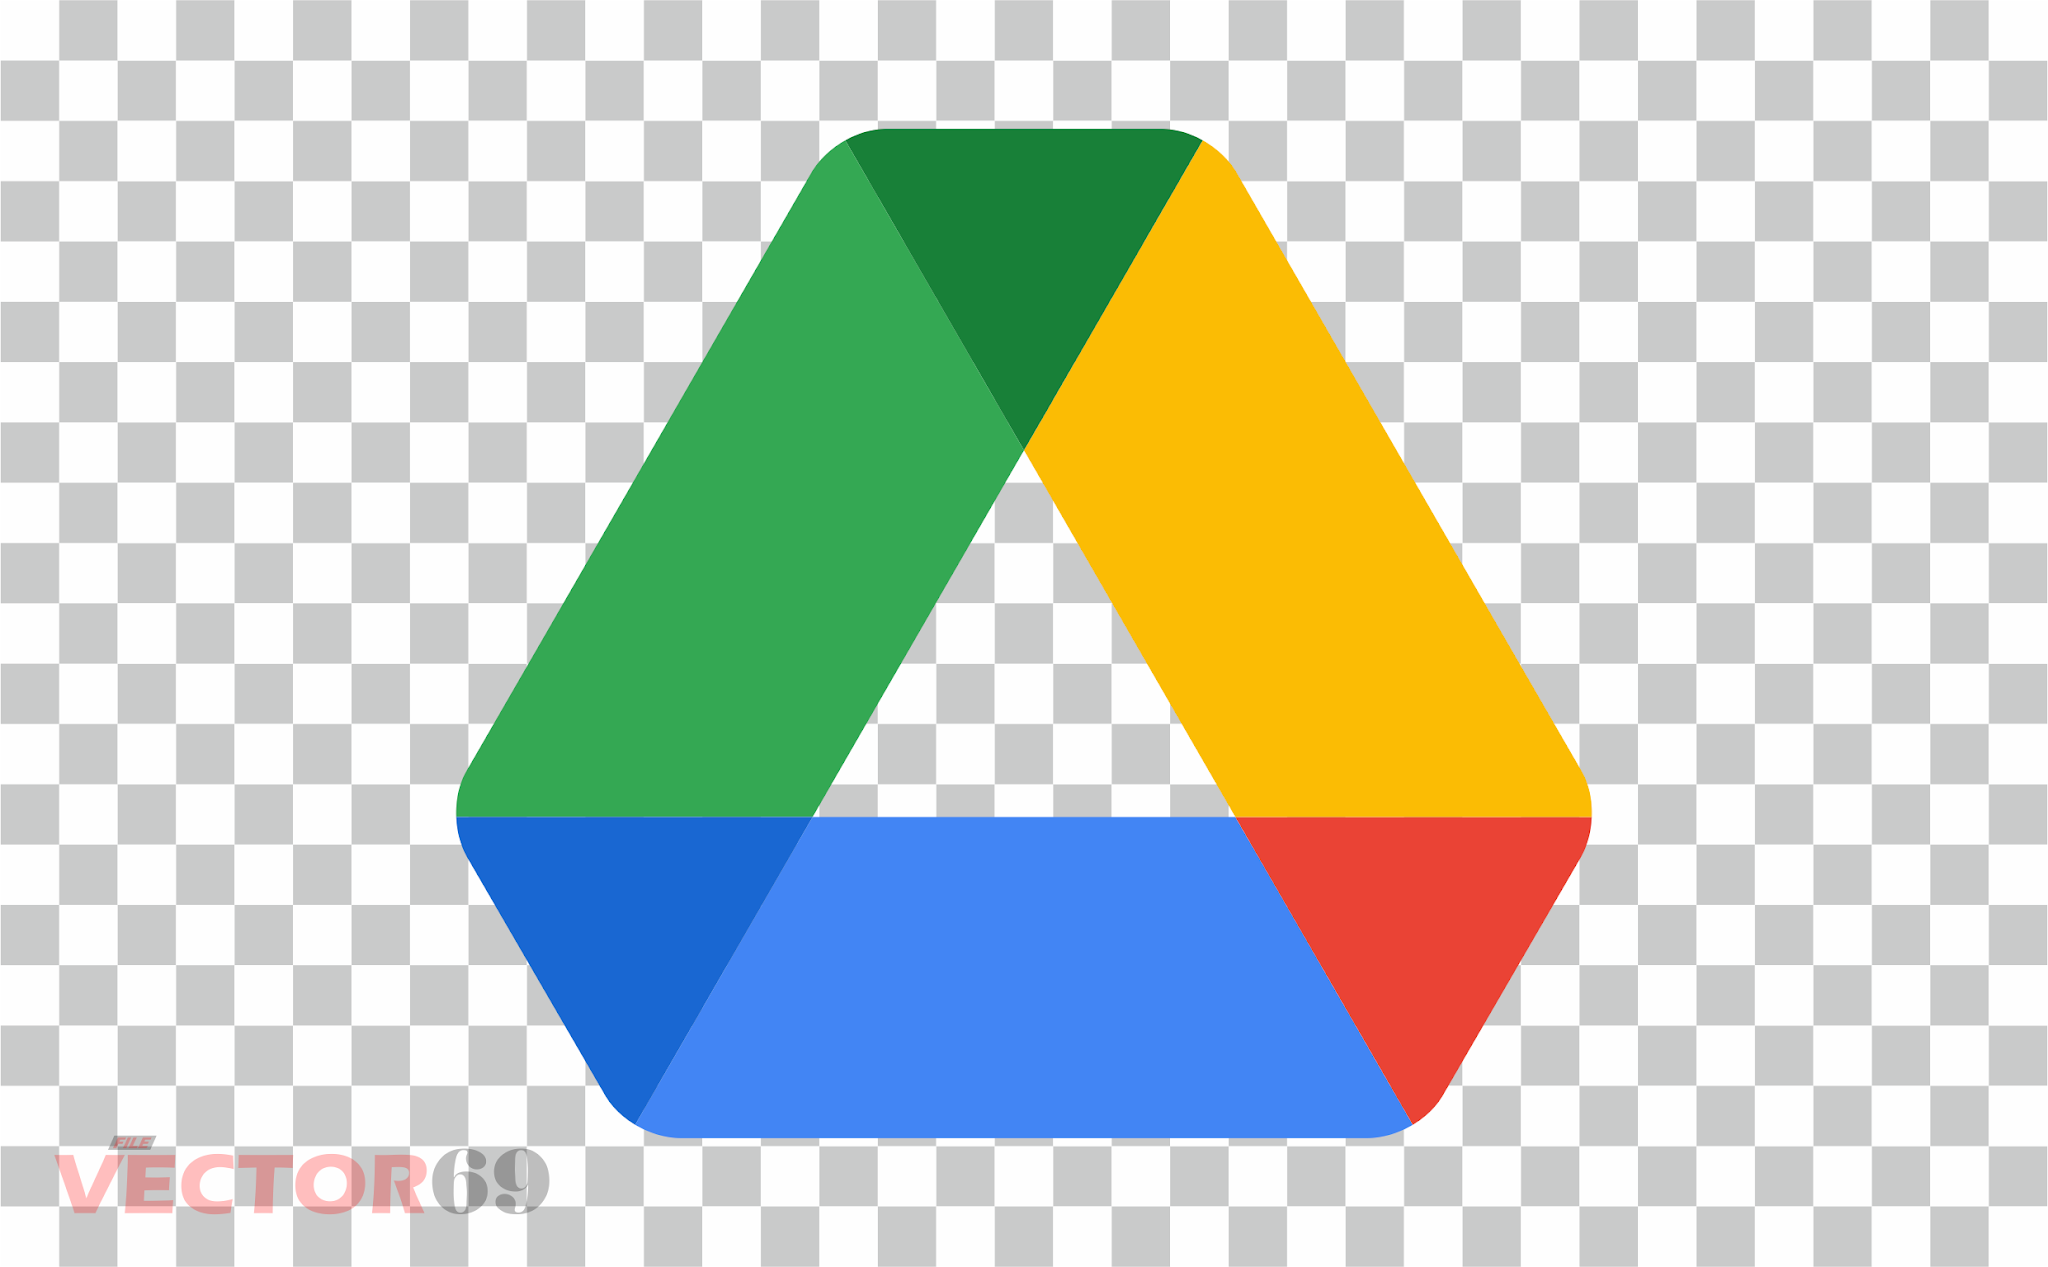 Google Drive New 2020 Logo - Download Vector File PNG (Portable Network Graphics)